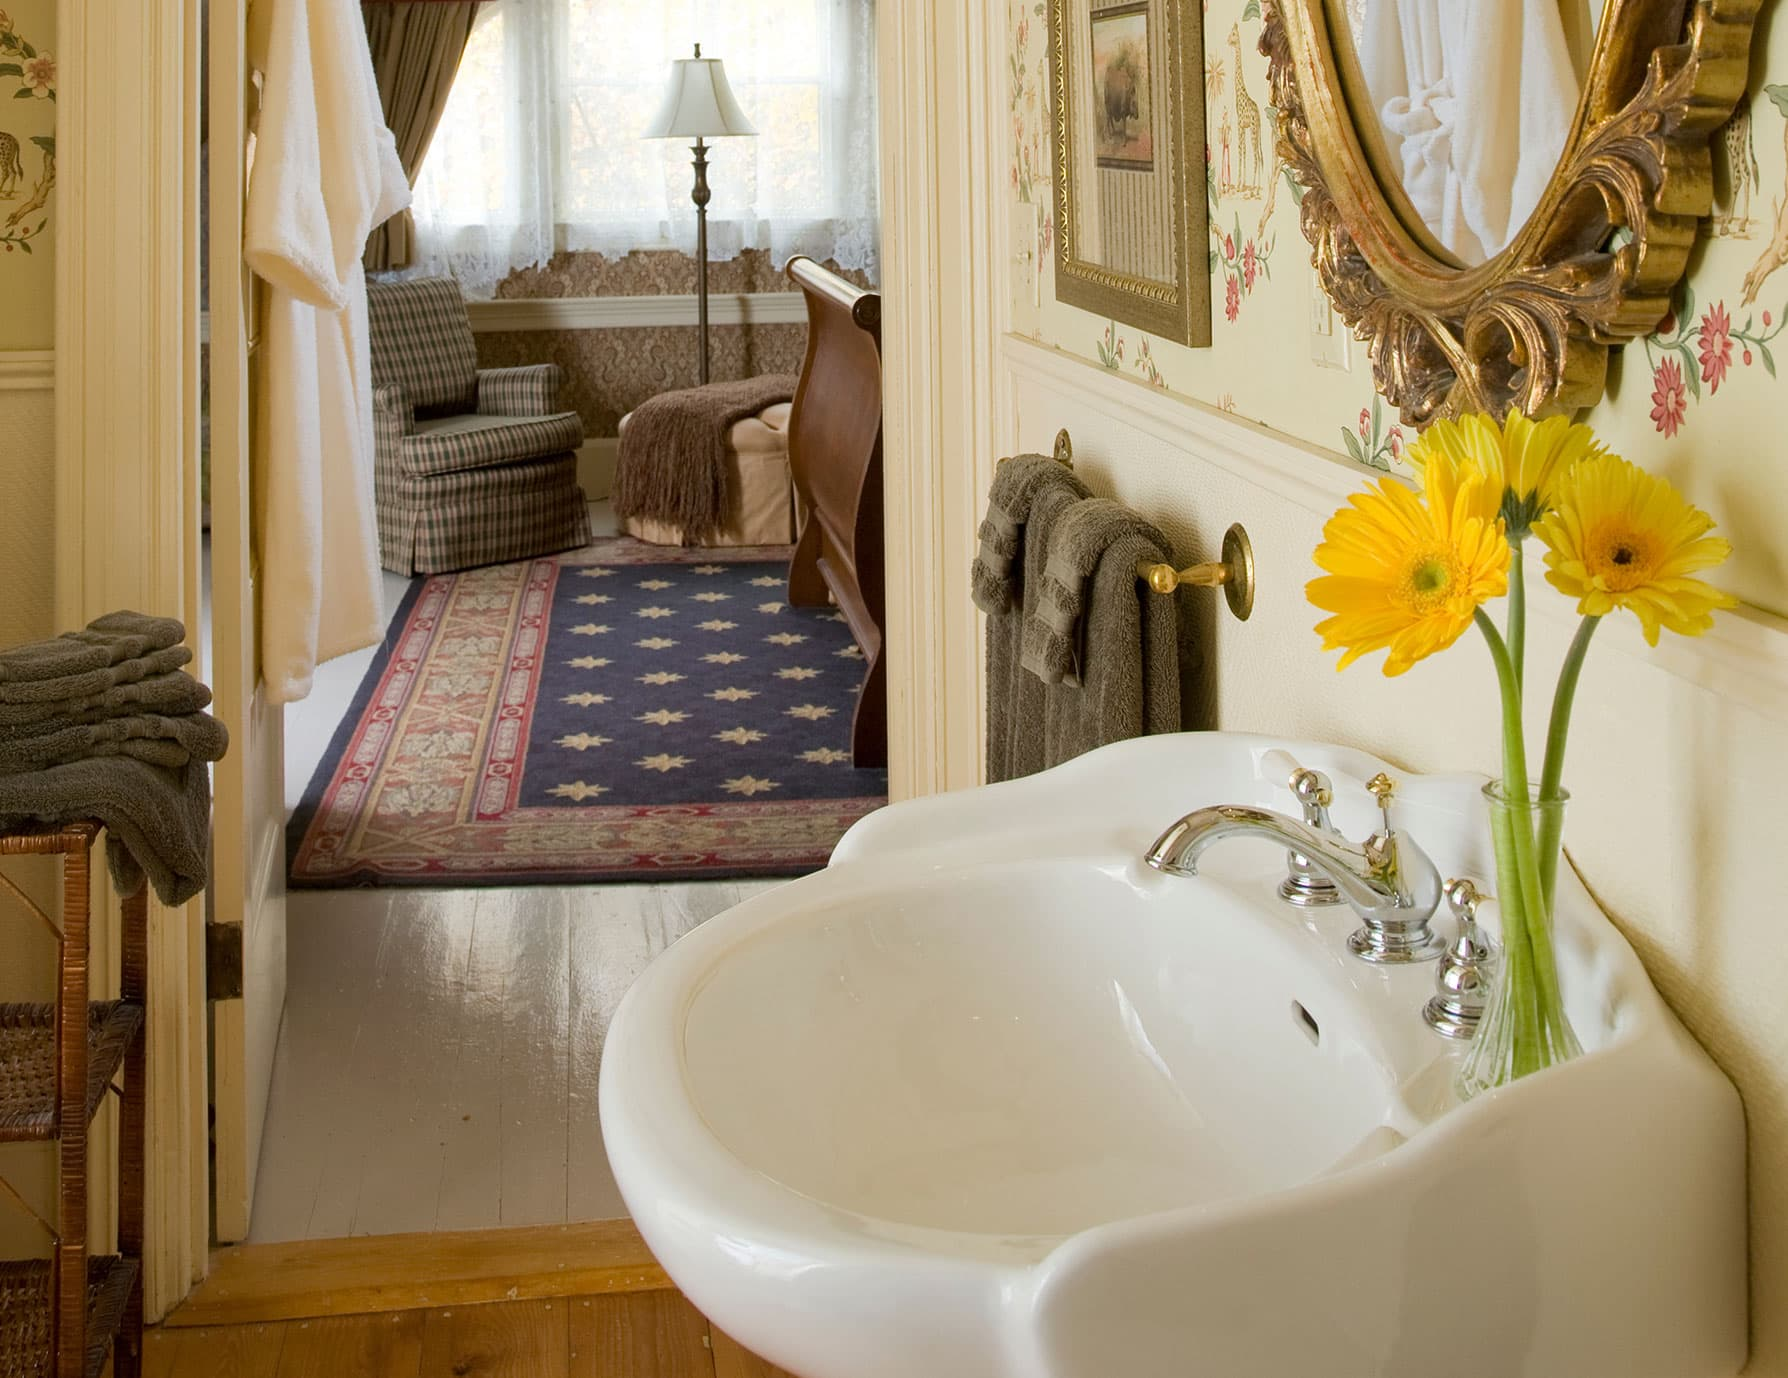 Bathroom sink and mirror with view of sitting area down the hall